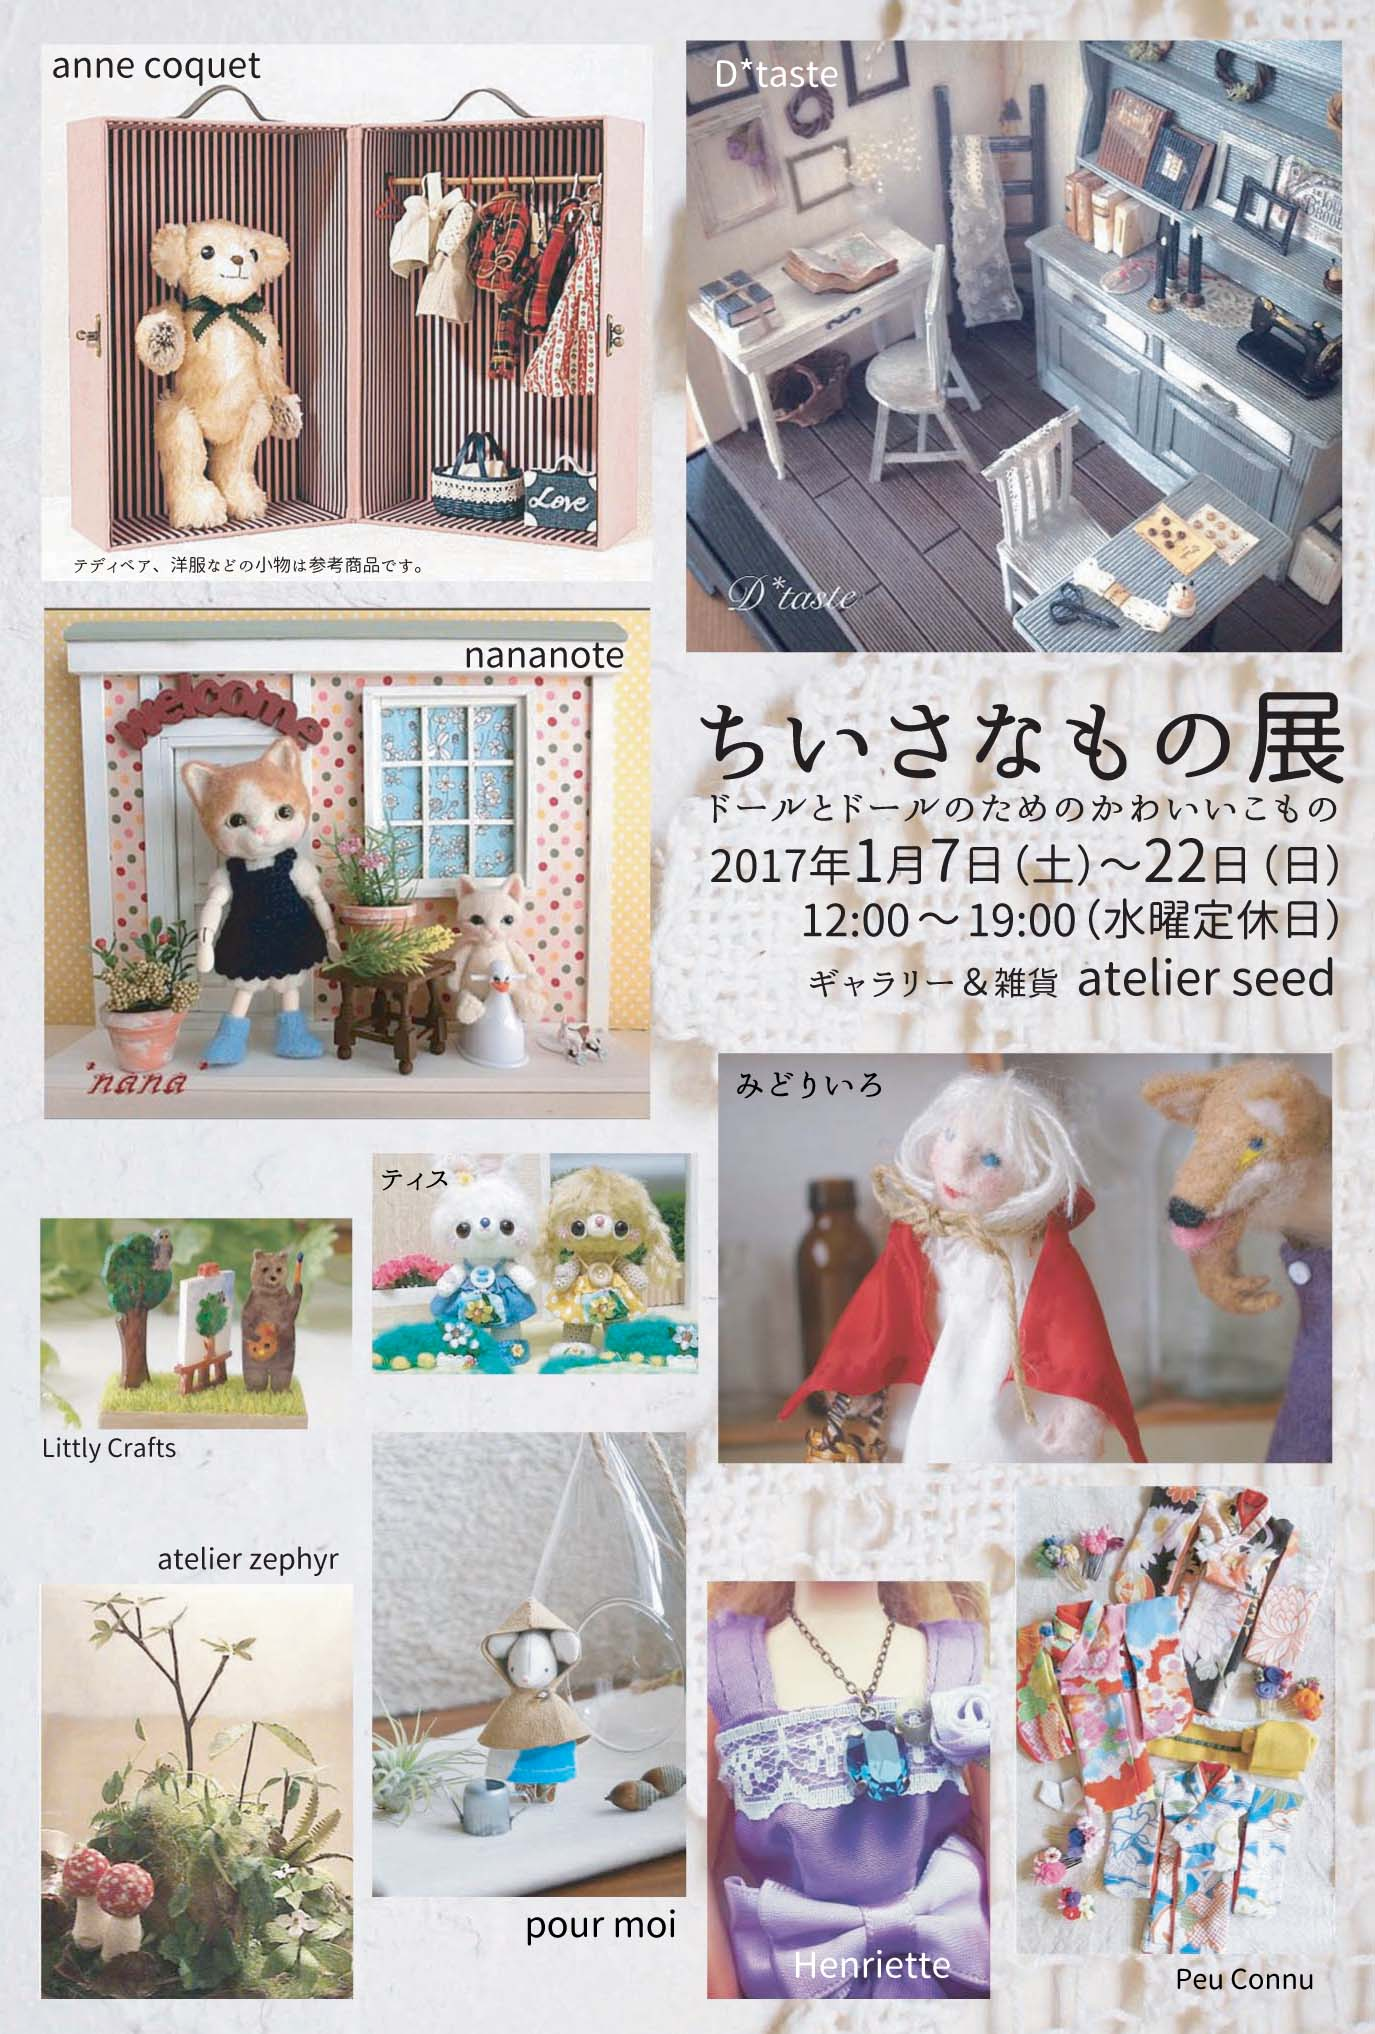 ちいさなもの展